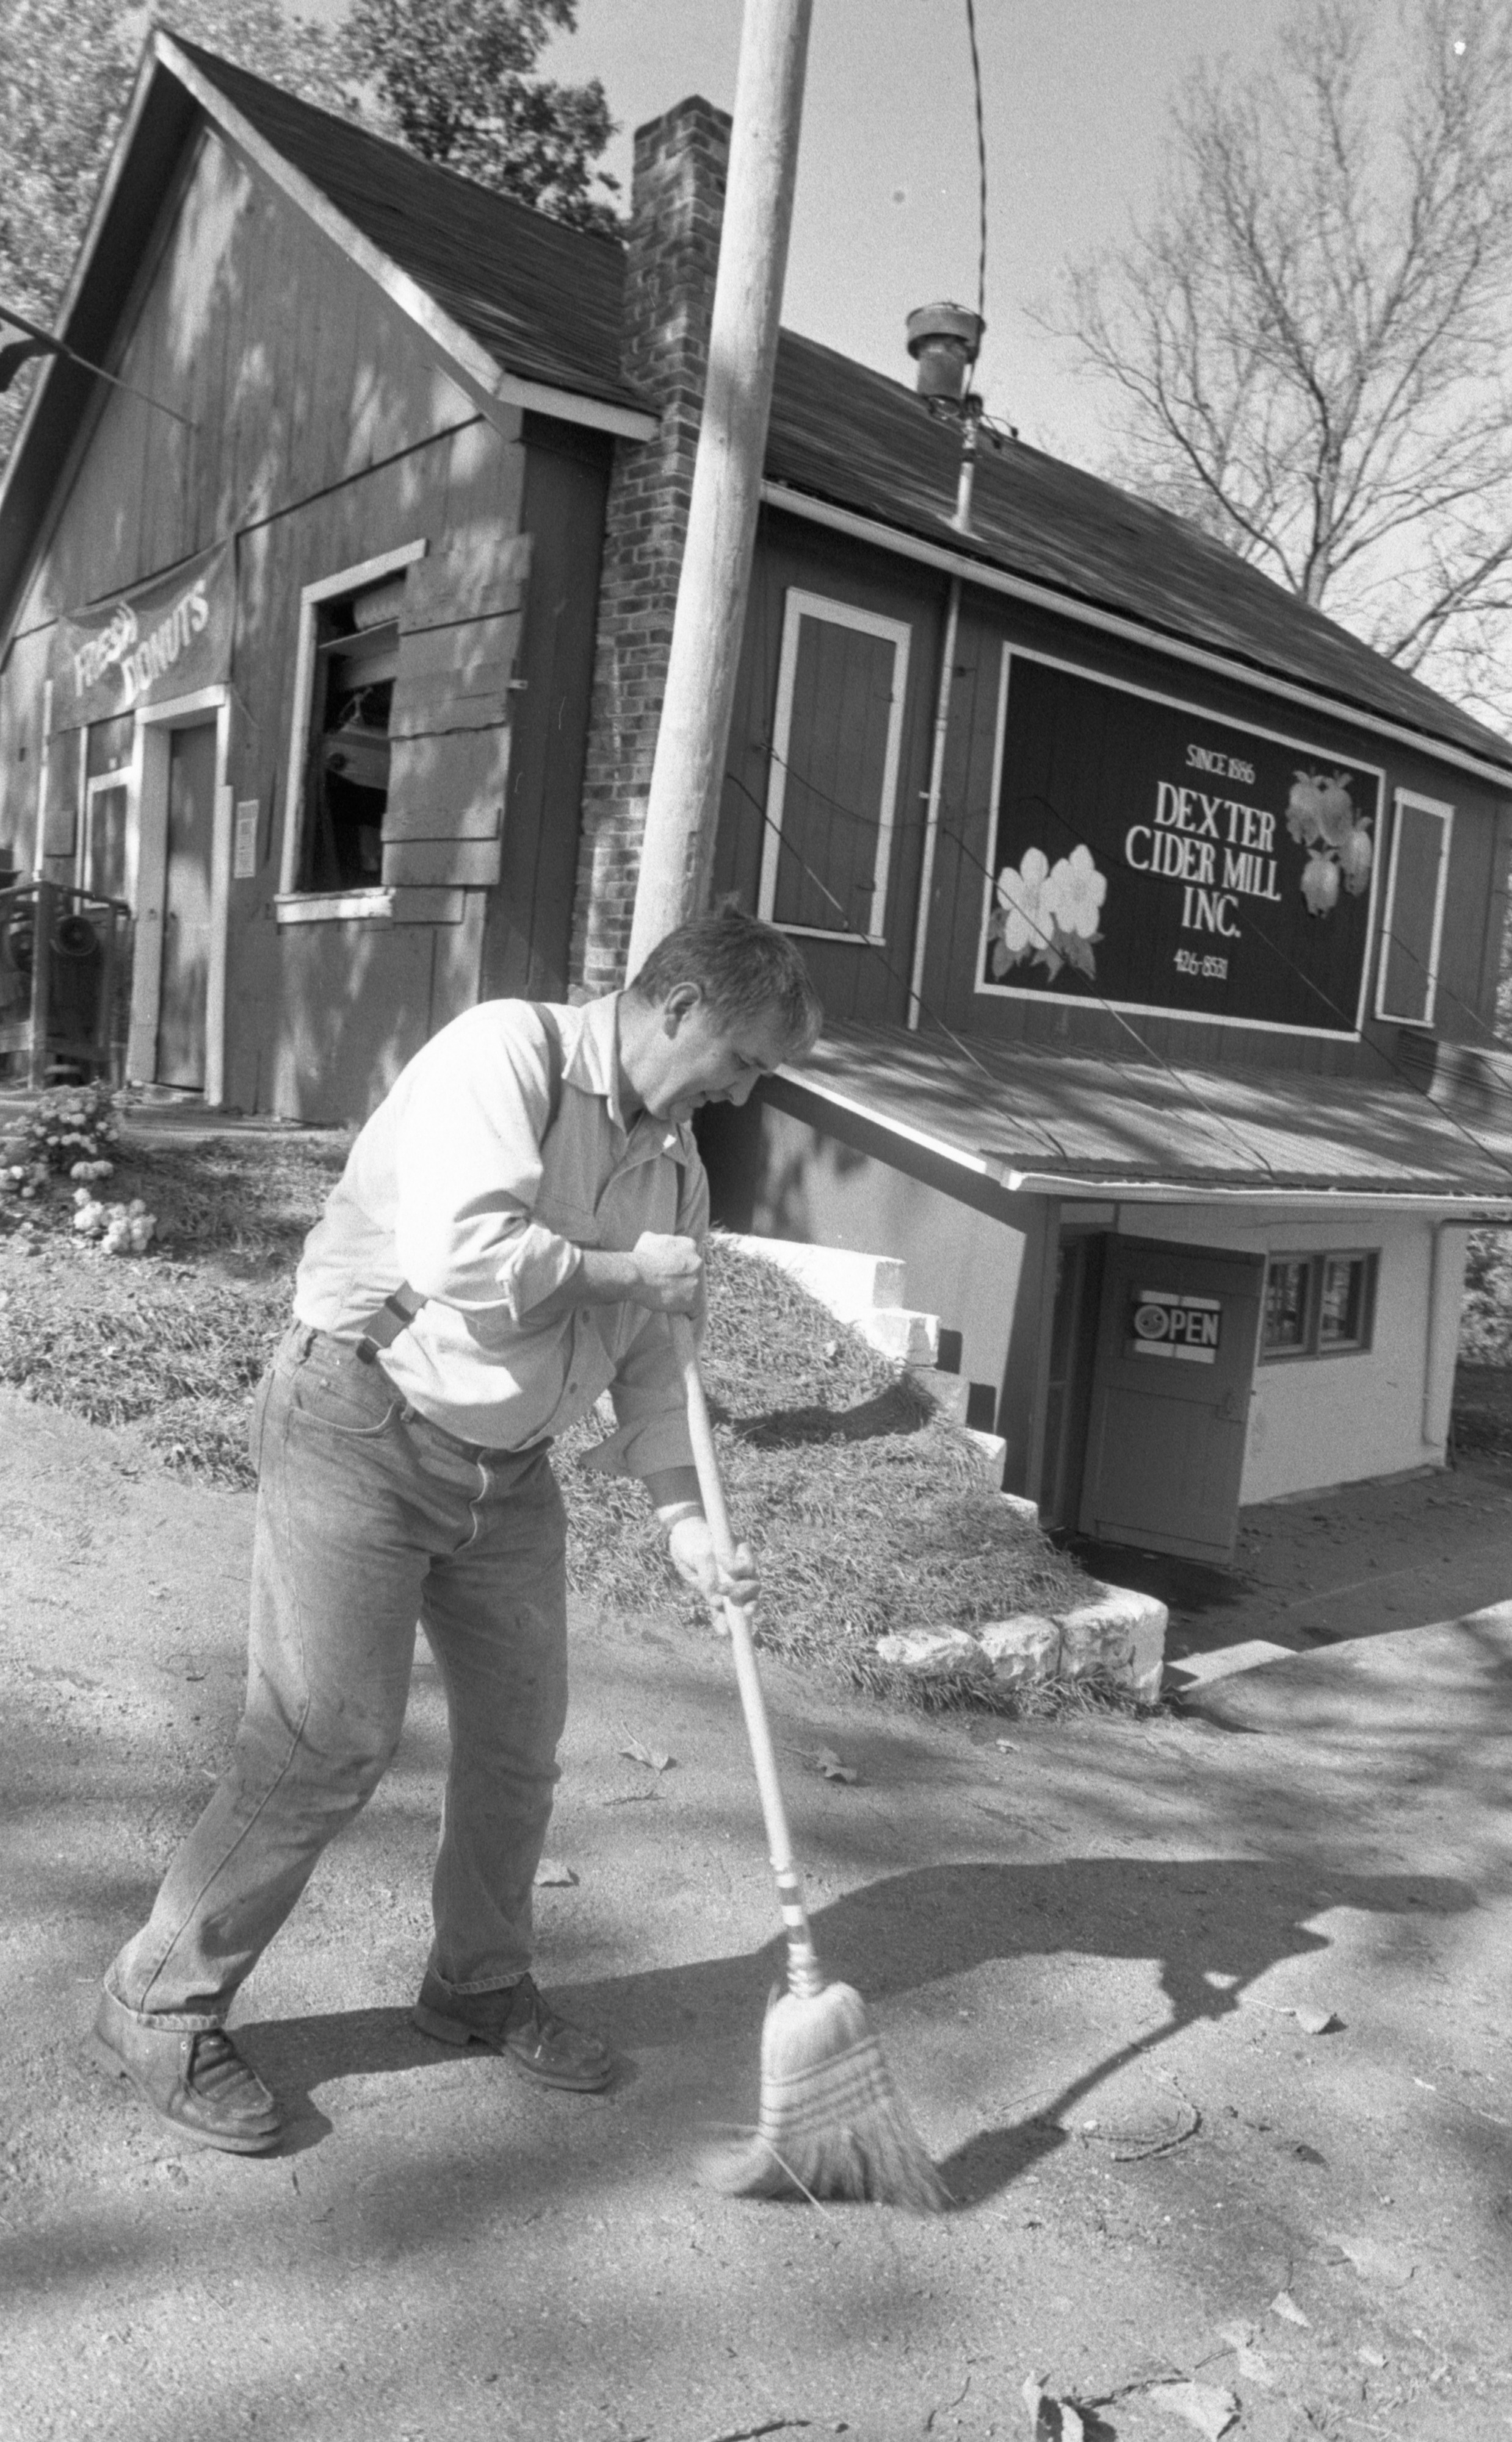 Richard Koziski, Owner, Sweeps In Front Of The Dexter Cider Mill, October 1988 image